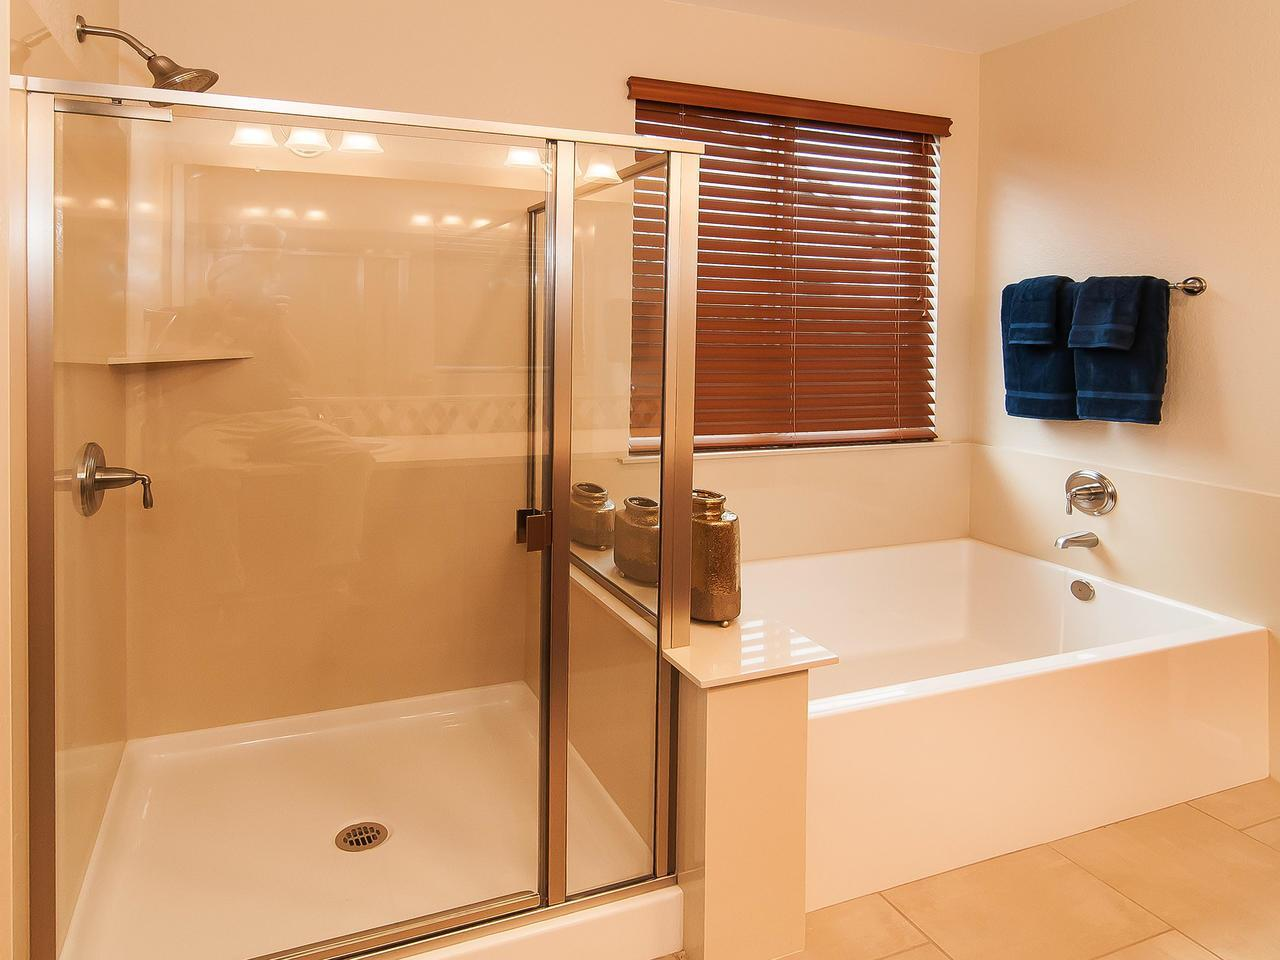 Bathroom featured in the Residence 2041 By Legacy Homes in Merced, CA